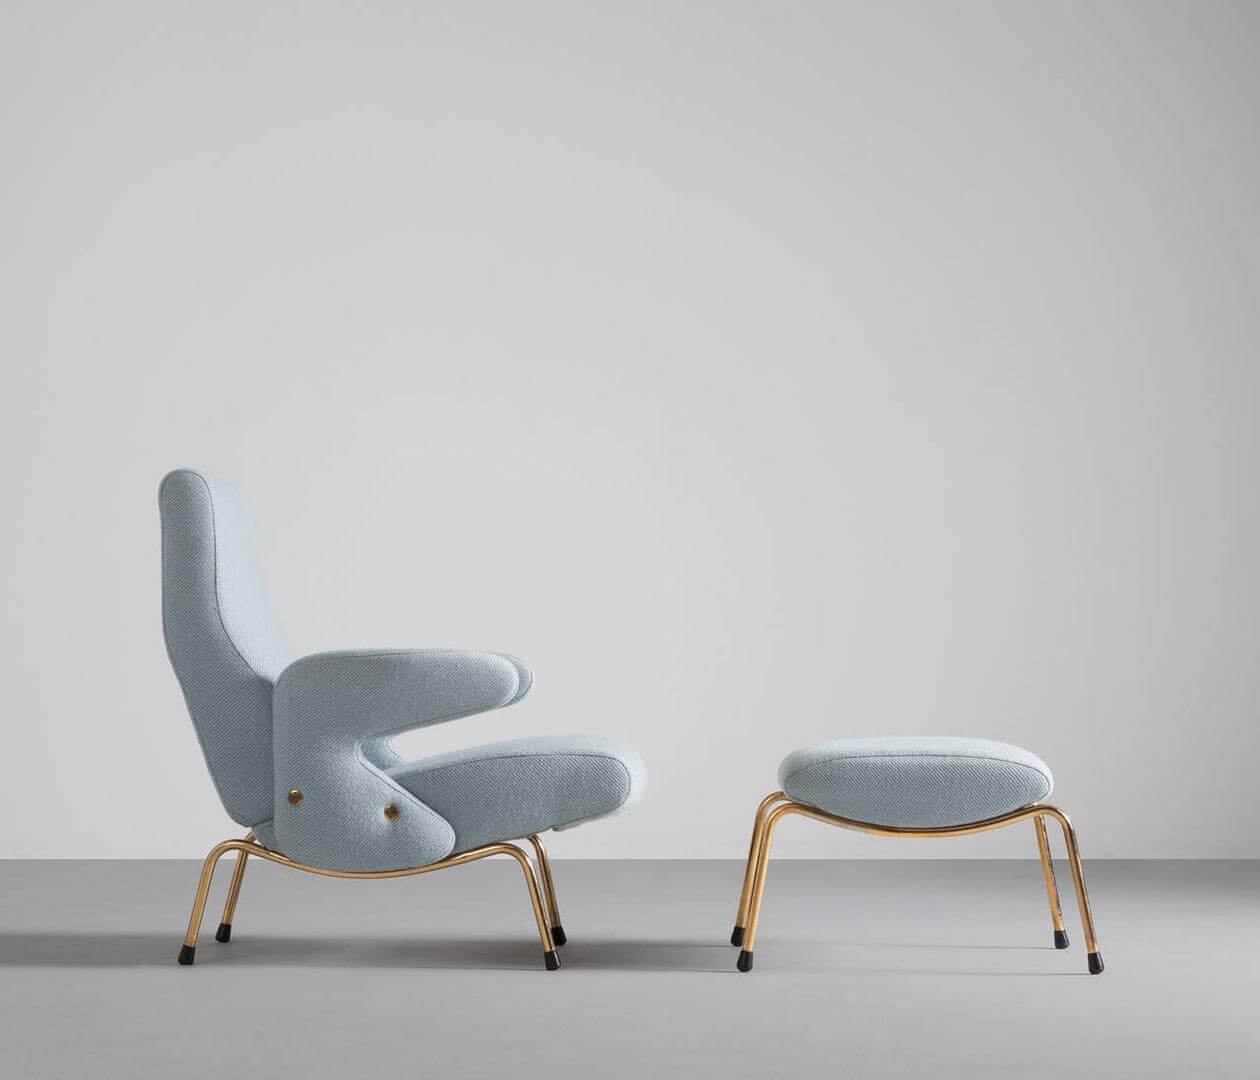 Delfino chair 1954